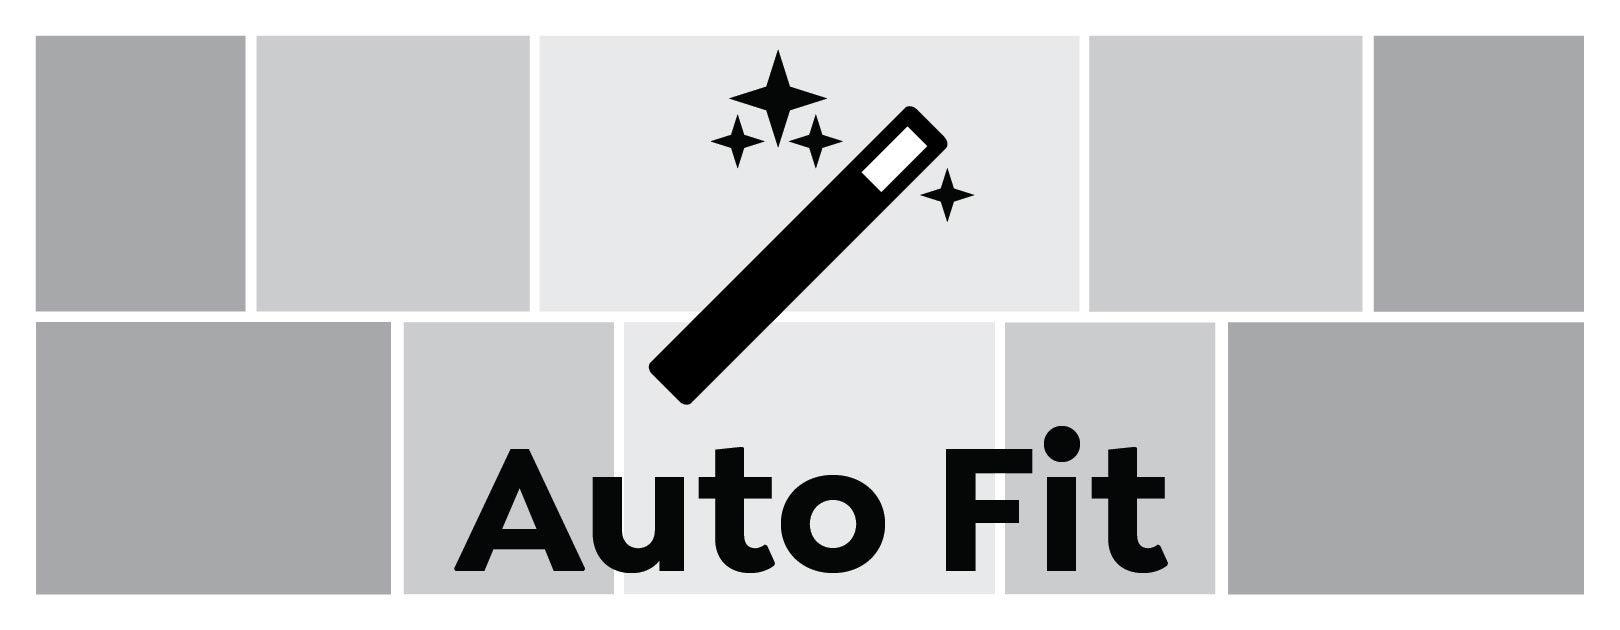 Auto Fit, Full Spread Landscape